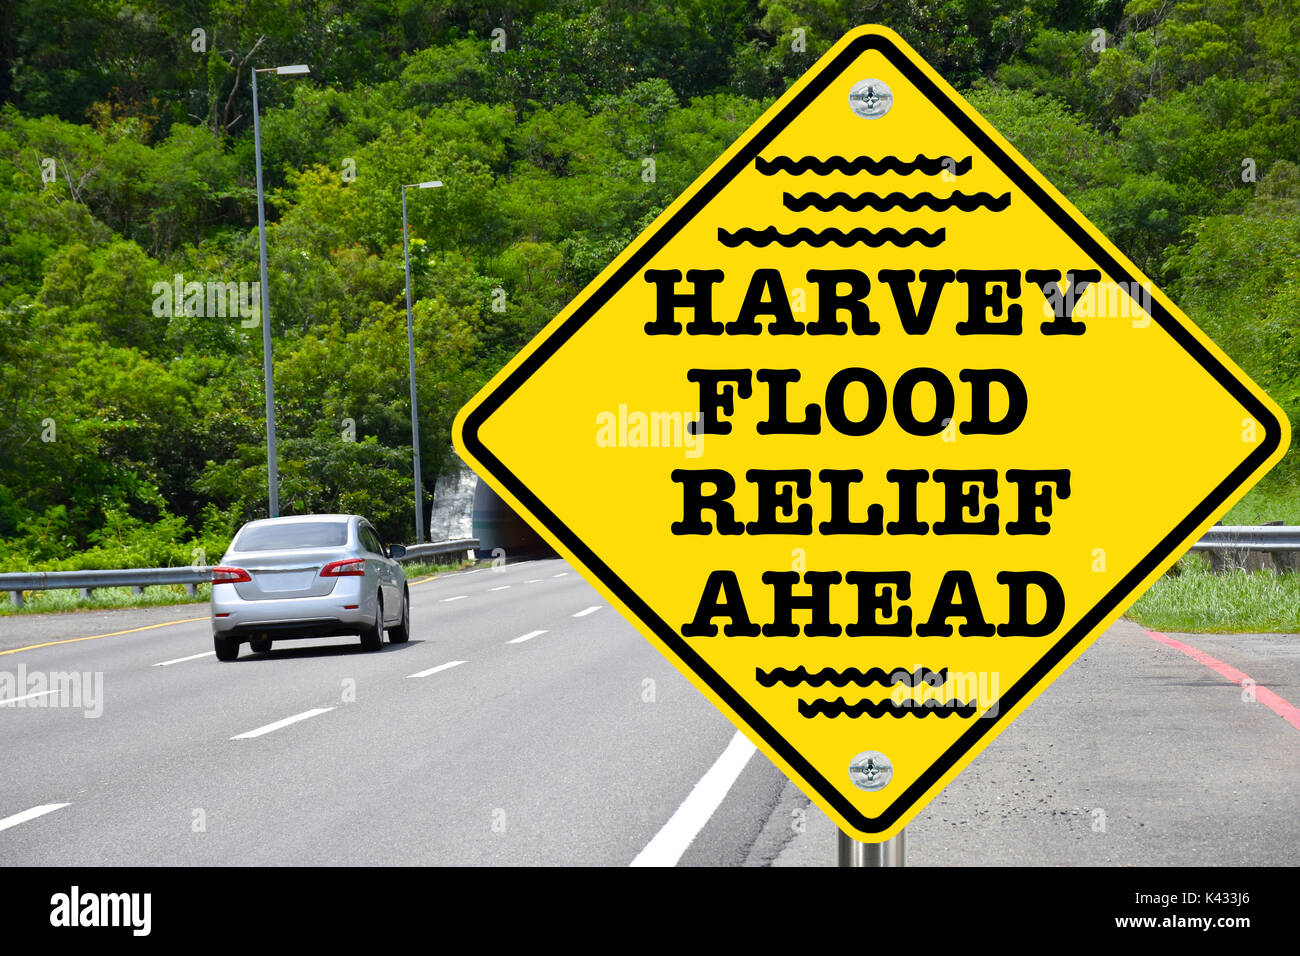 Harvey flood relief ahead, yellow warning road sign - Stock Image